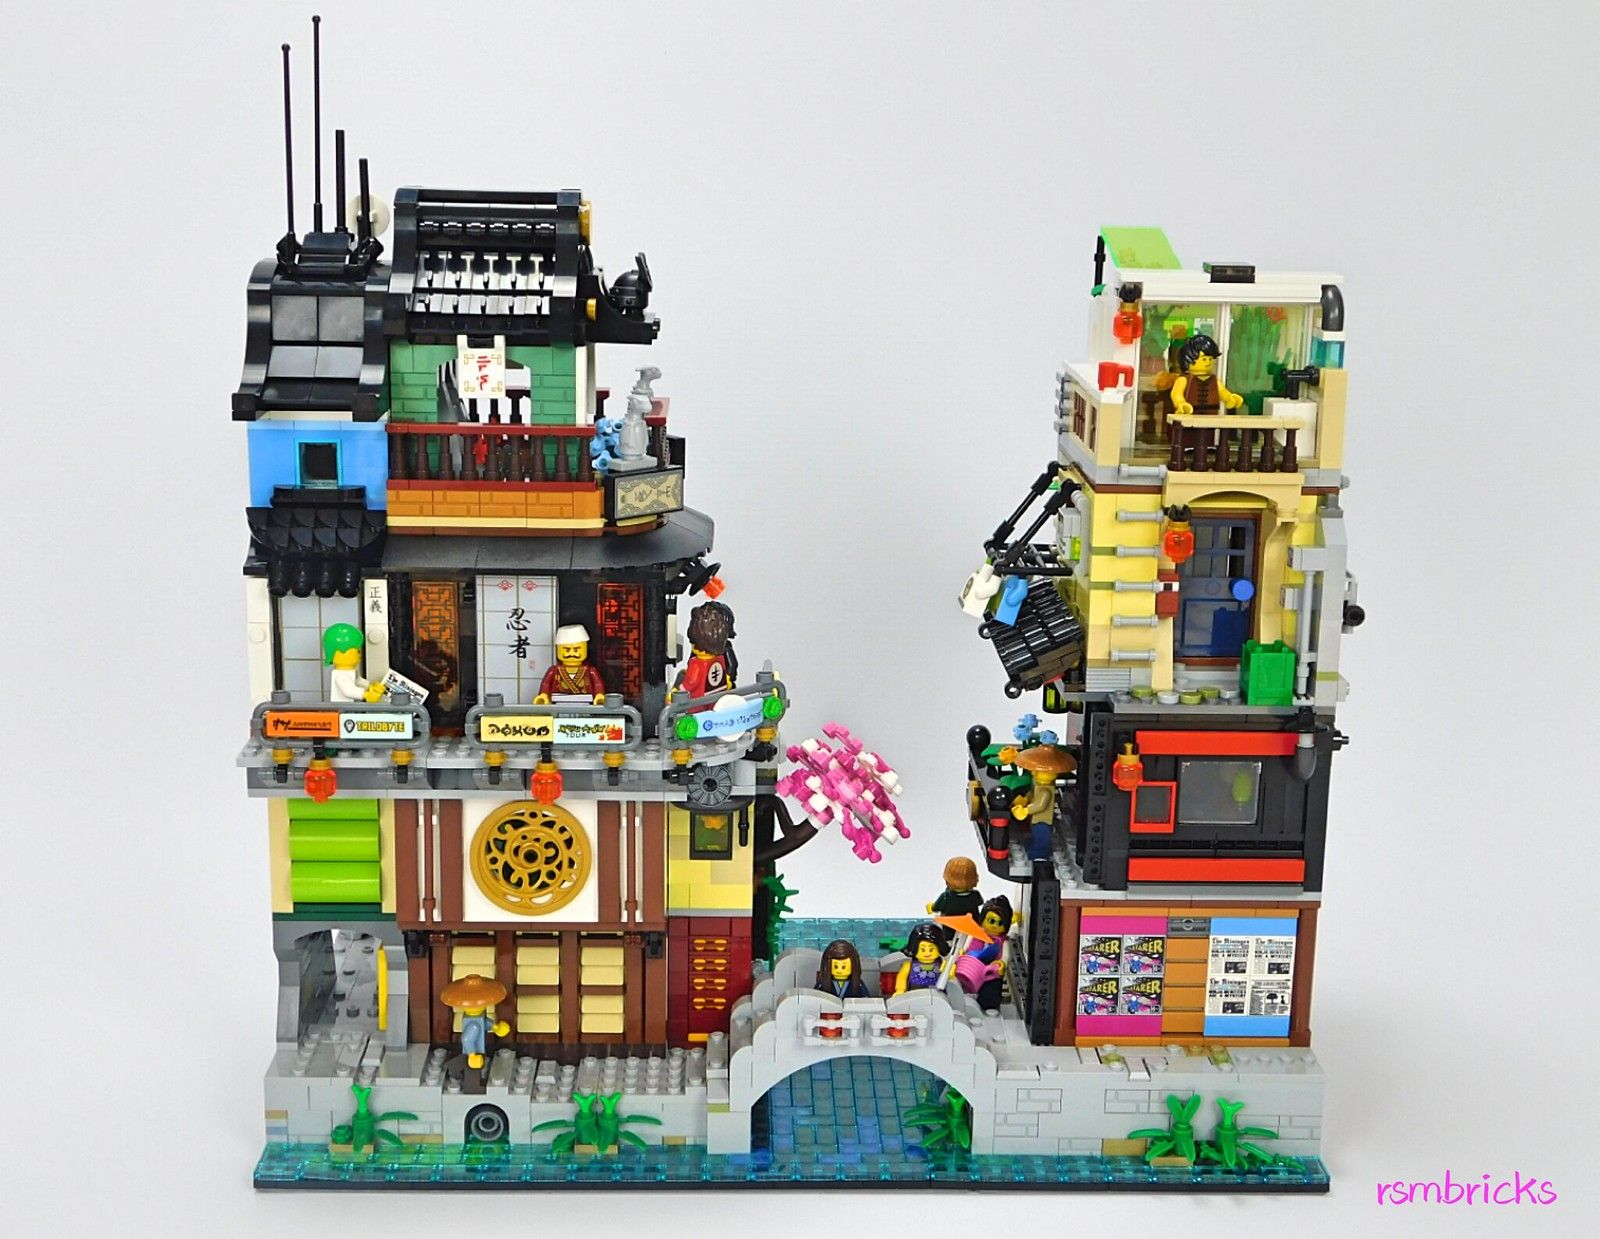 Ninjago City The Suburbs An Extension To Lego Set 70657 Ninjago City Docks Lego Ninjago City Lego Projects Cool Lego Creations